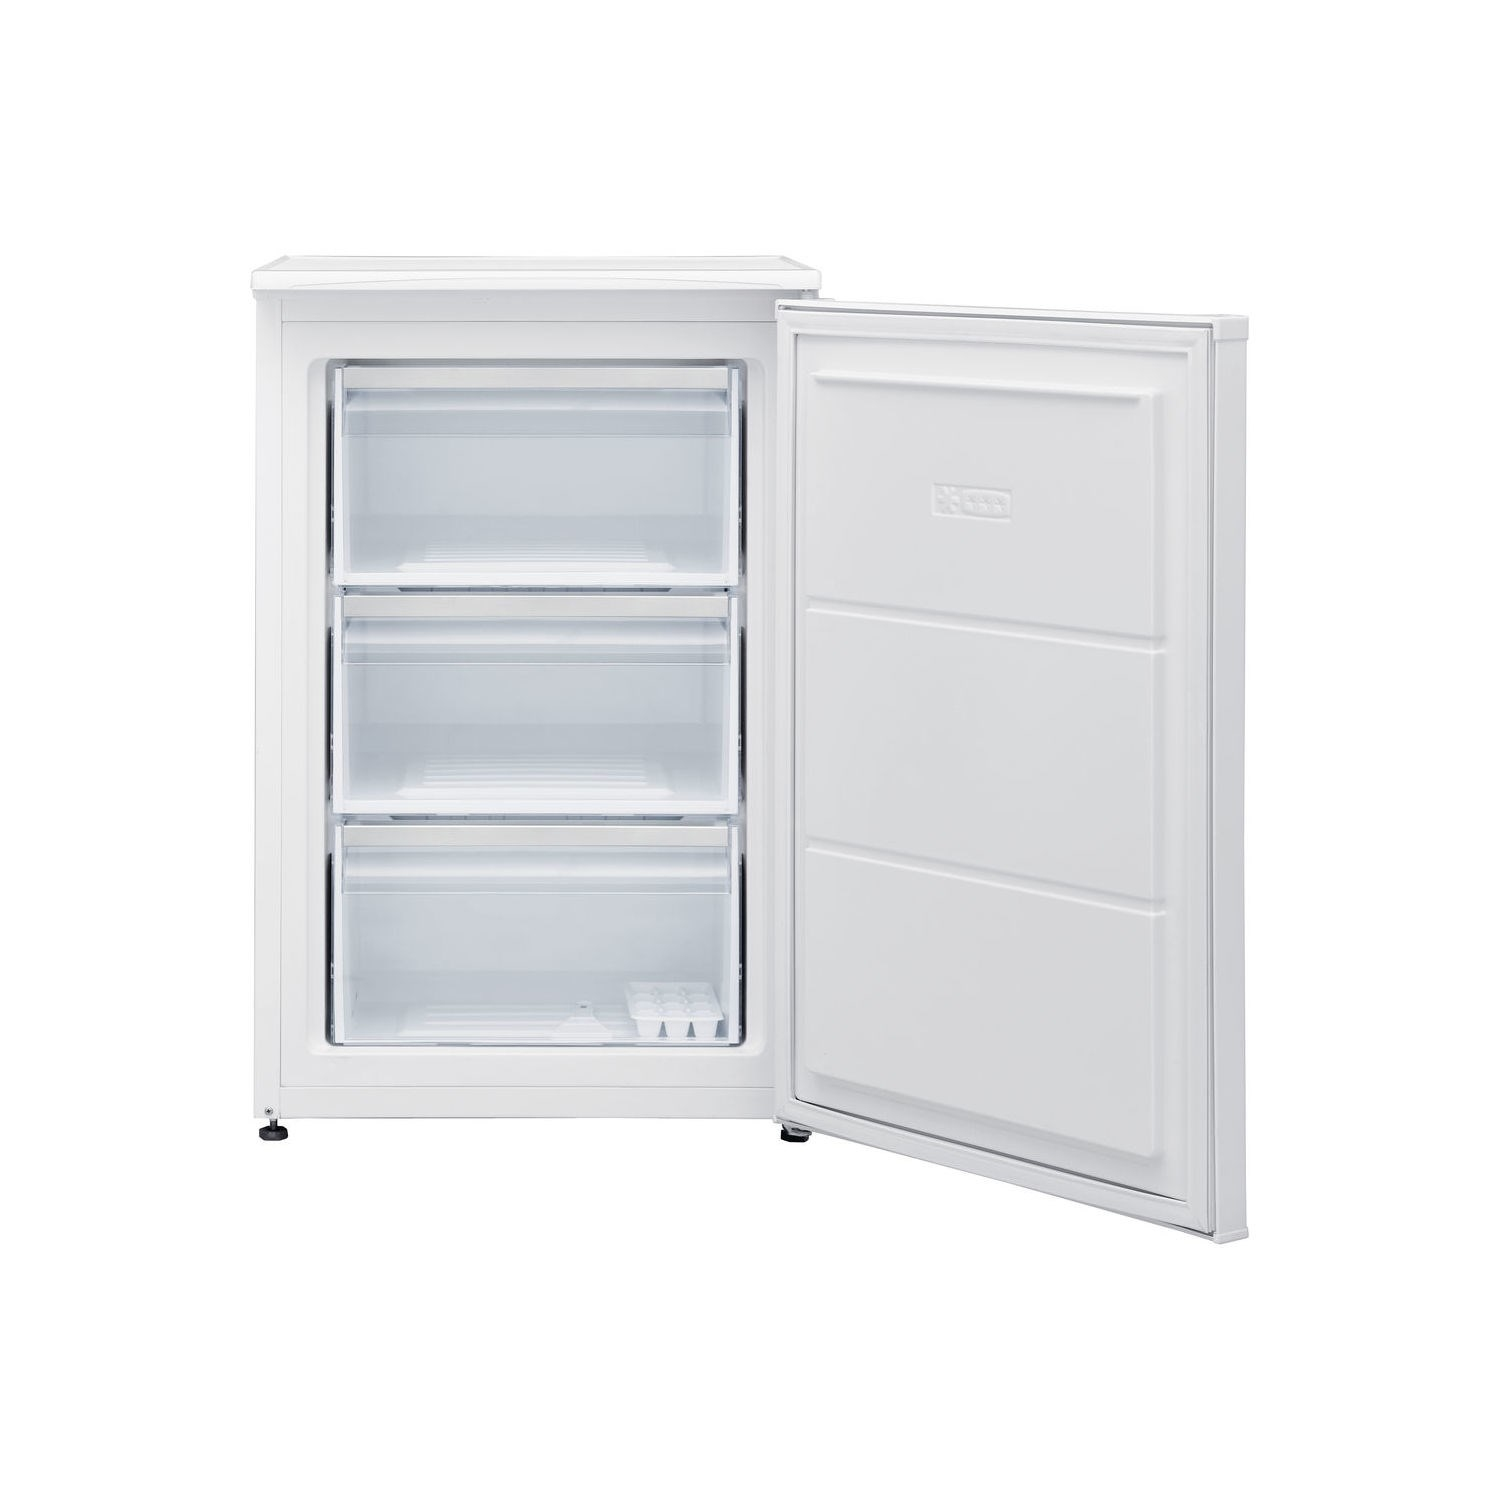 Hotpoint 55cm Under Counter Freezer (white - A+ energy rating) - 0